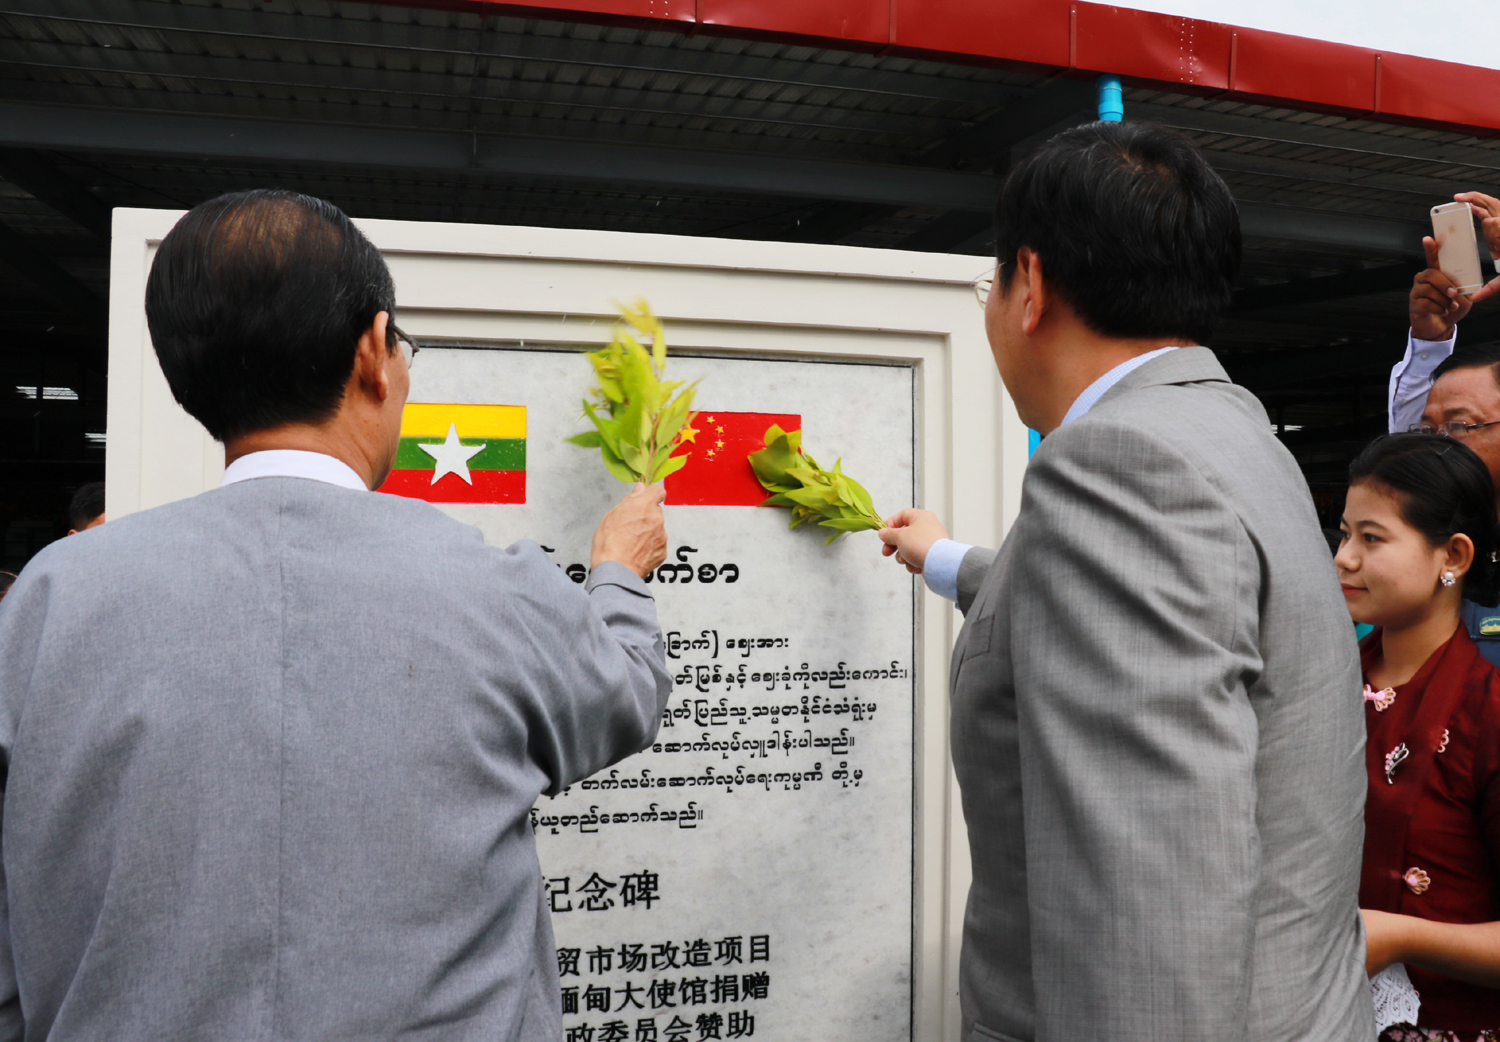 Chinese Ambassador to Myanmar, Hong Liang, and Chairman of Nay Pyi Taw Council, Dr. Myo Aung, reveal a stone monument for the rebuilt Thapyaygone Market on May 27, 2017. [Photo: China Plus/Tu Yun]